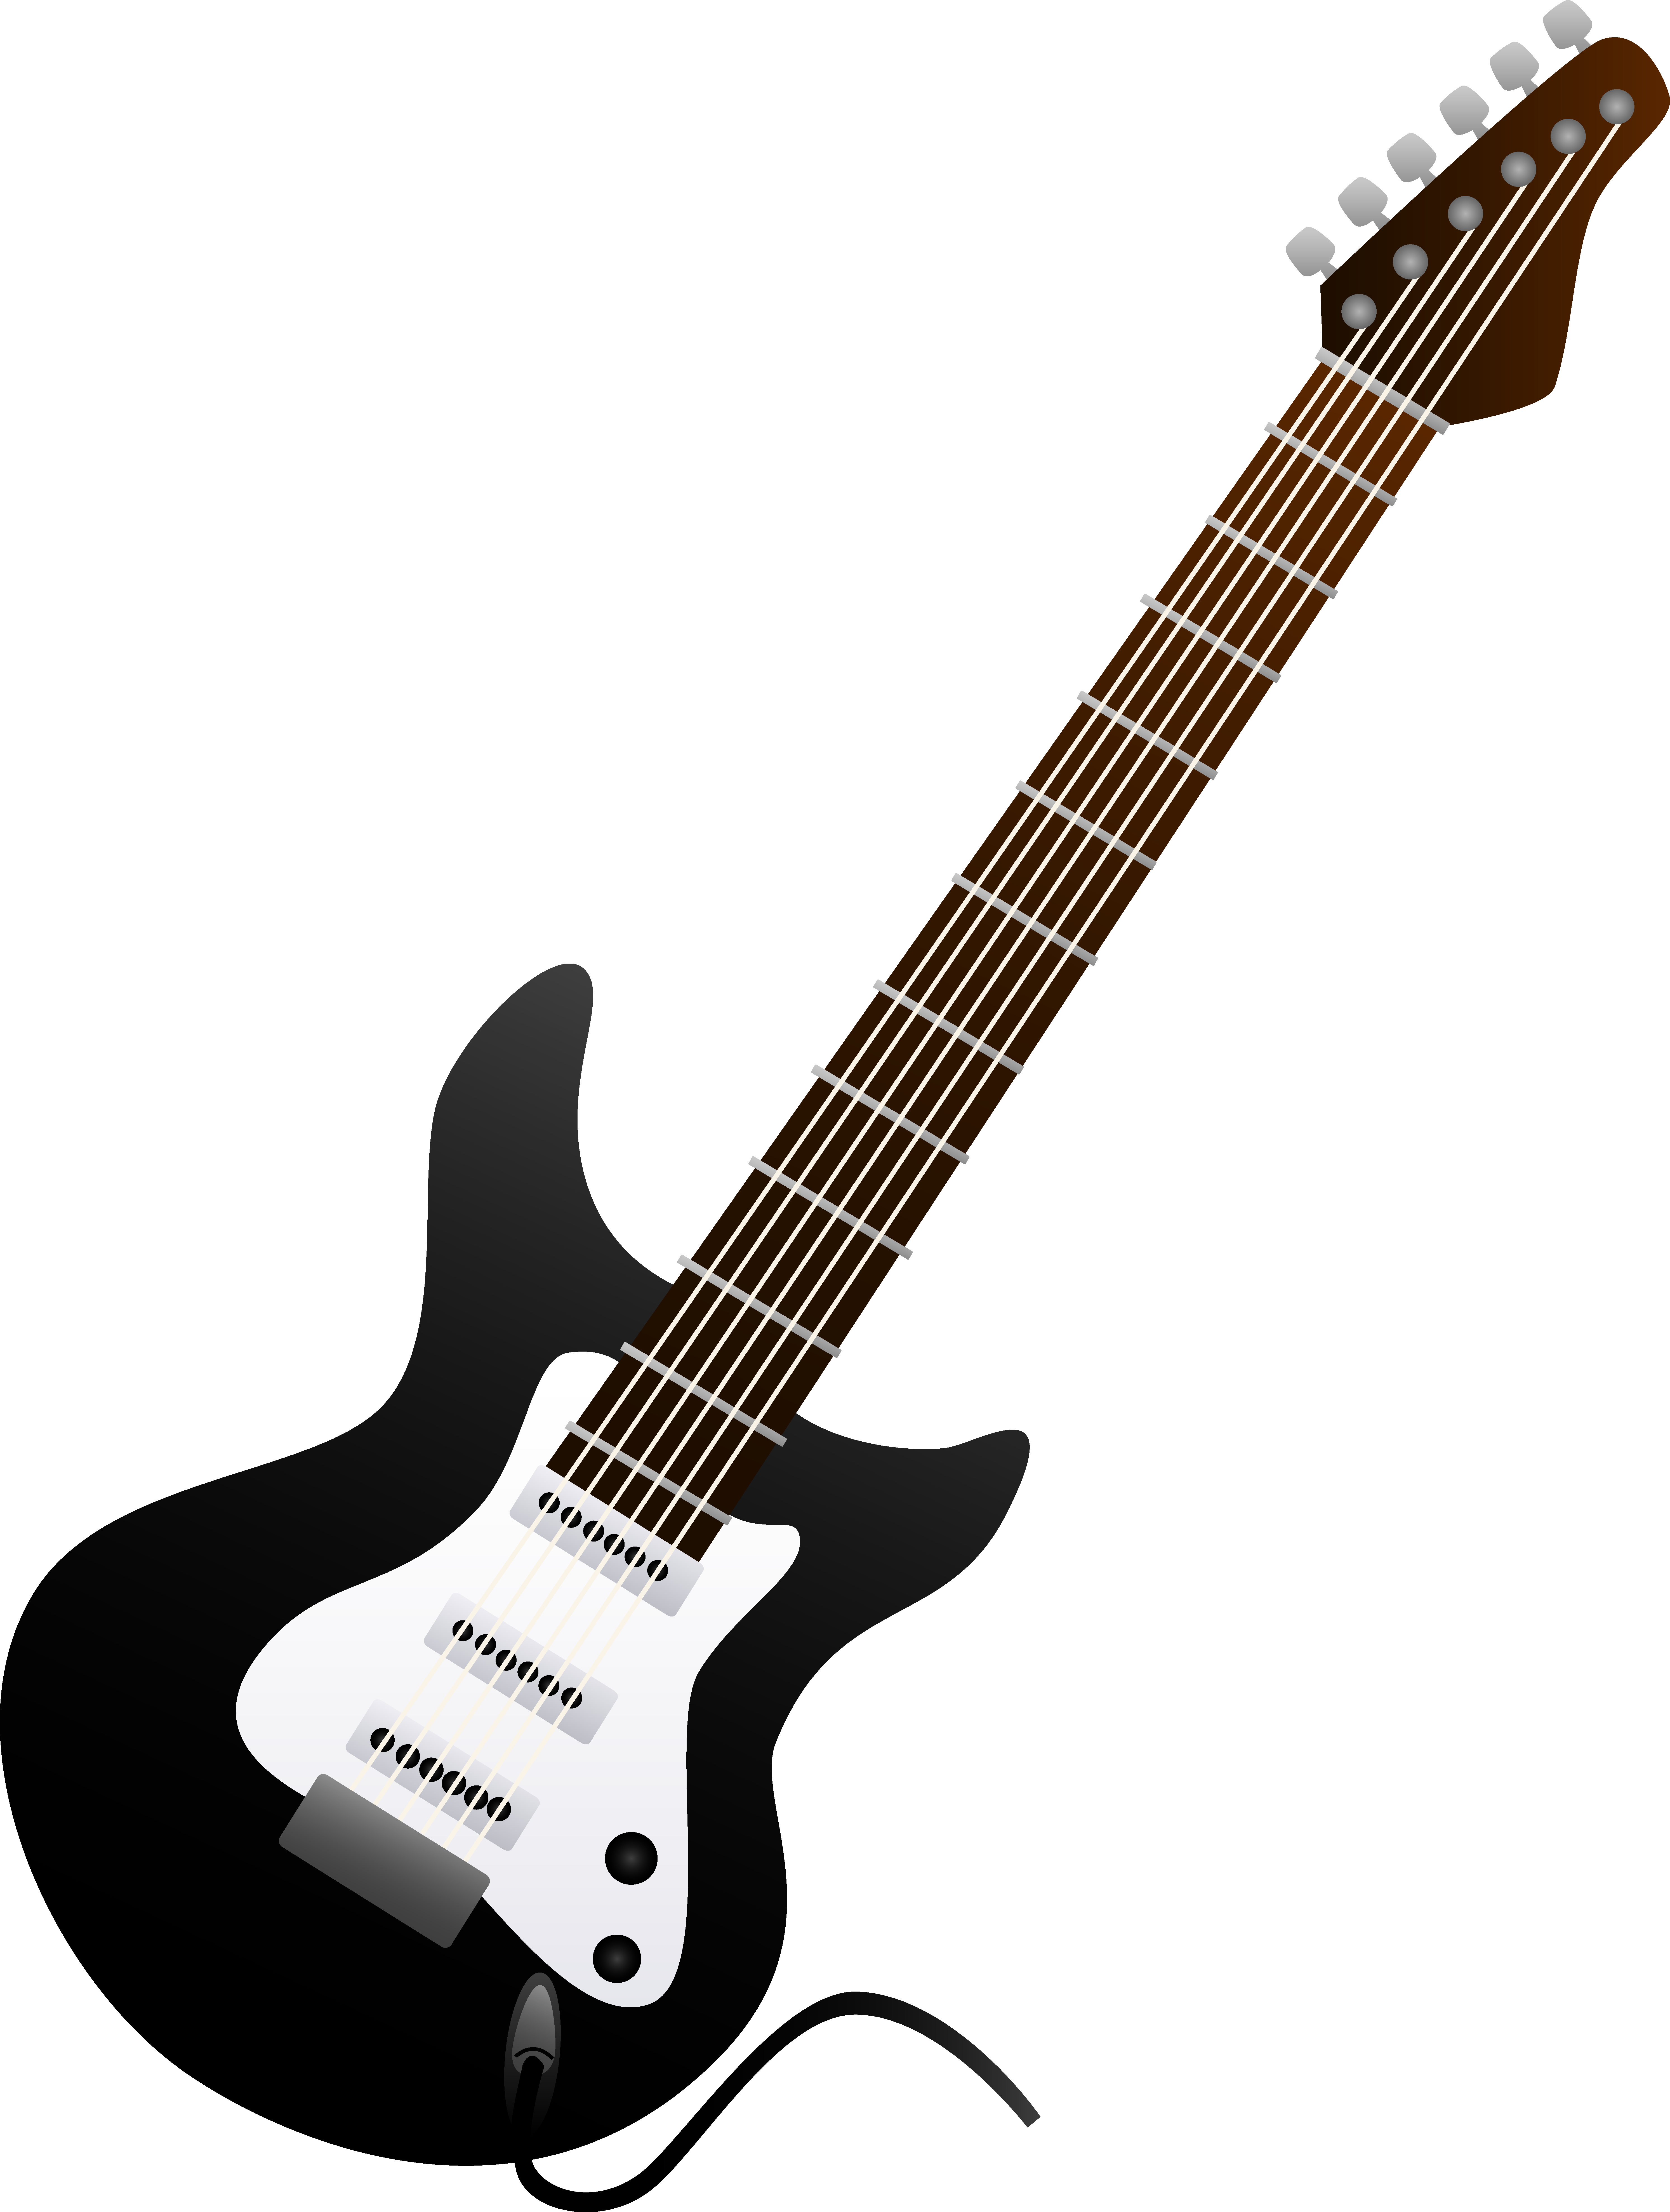 Blur clipart electric guitar And and white free guitar